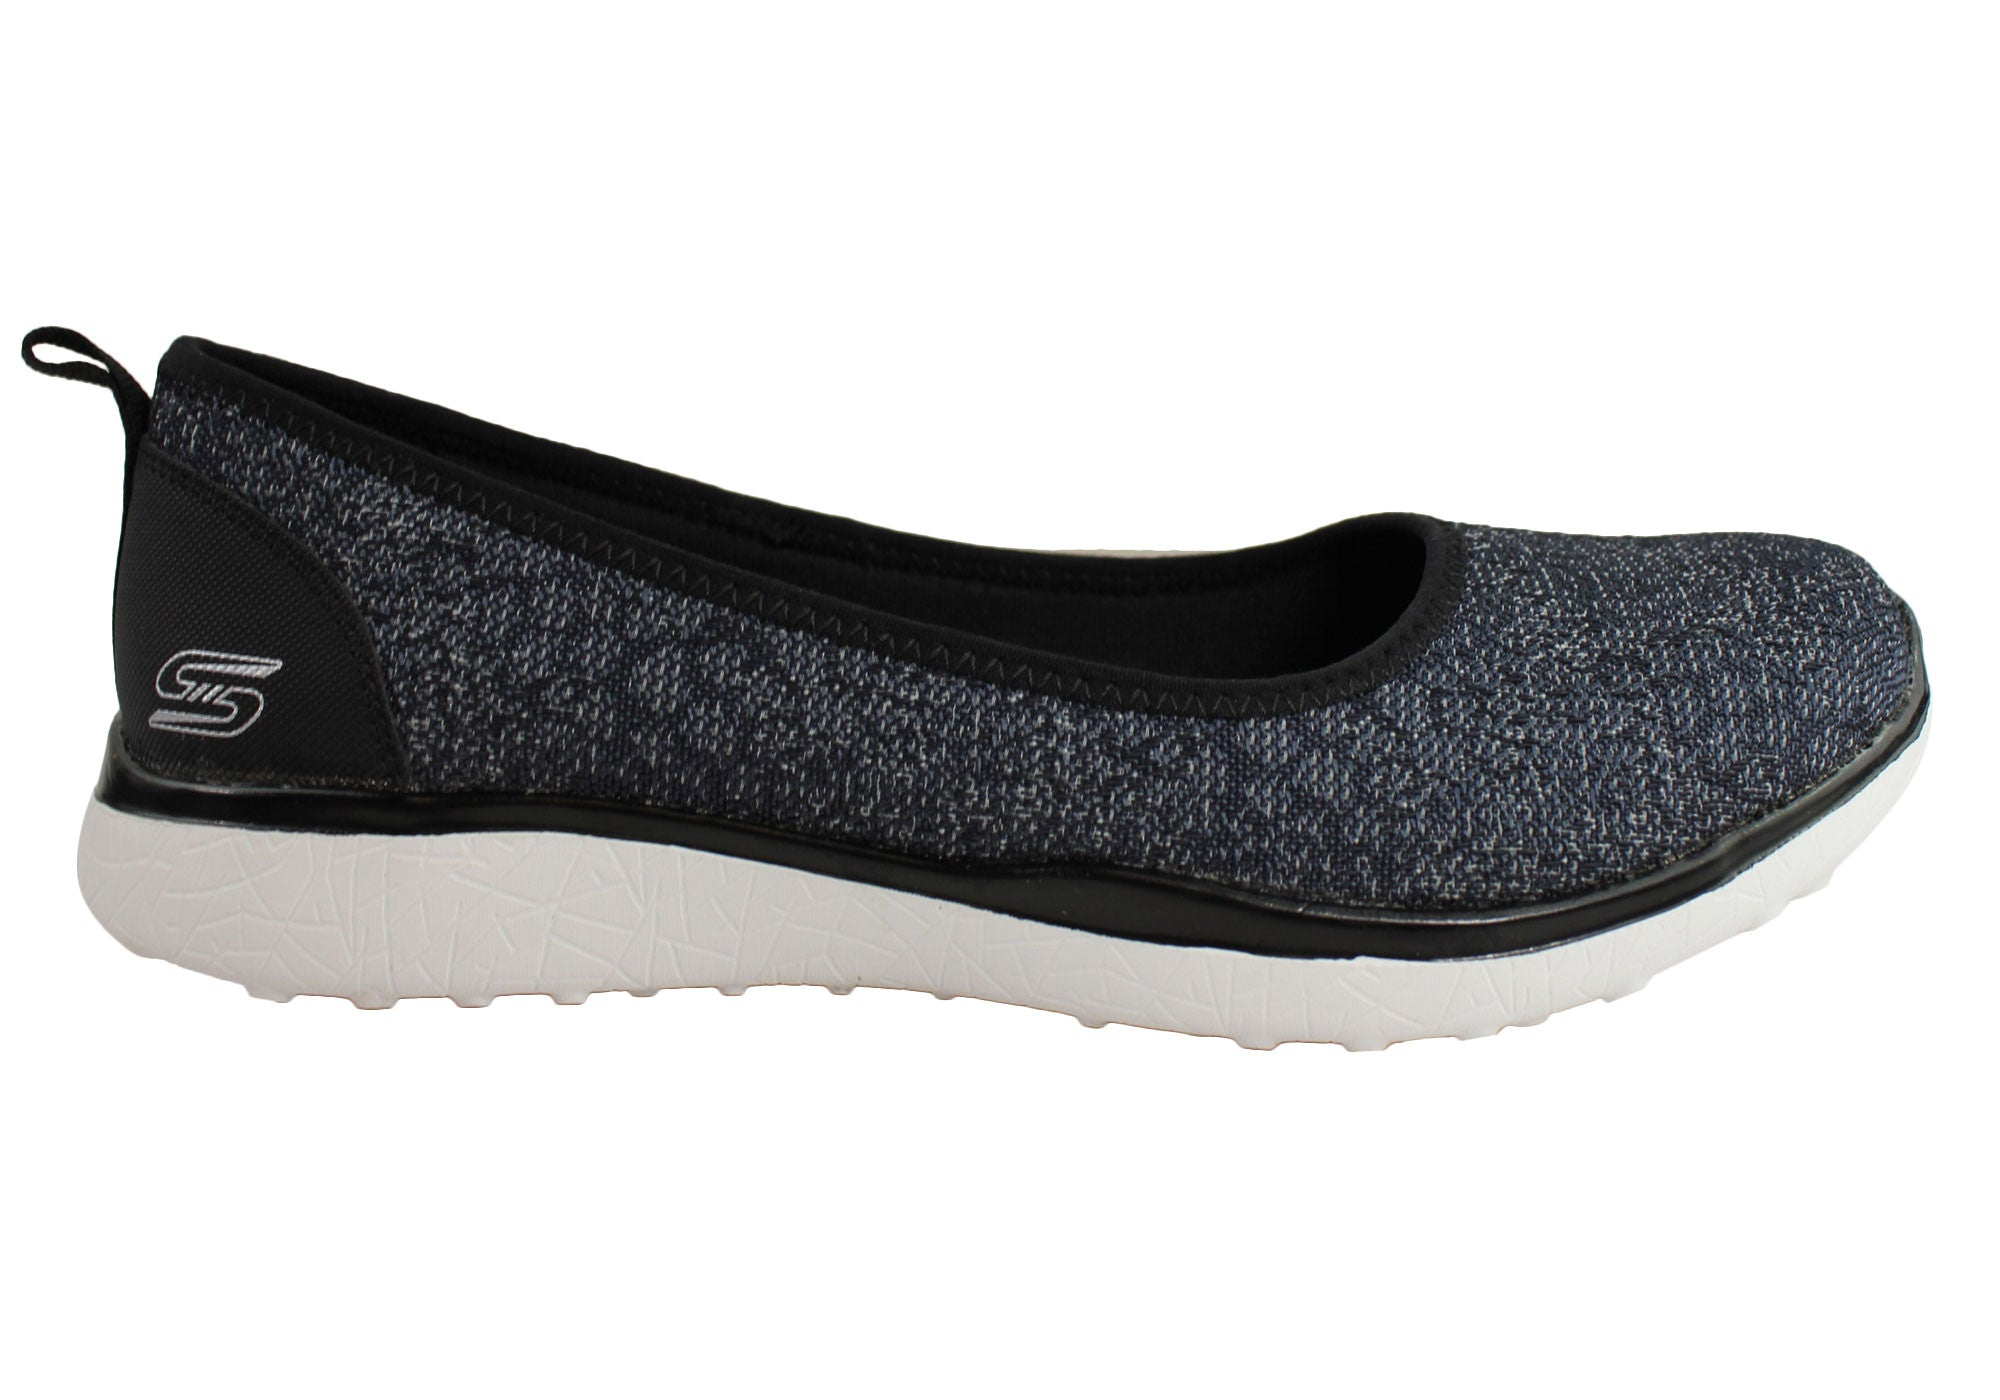 Hyped Womens Shoes